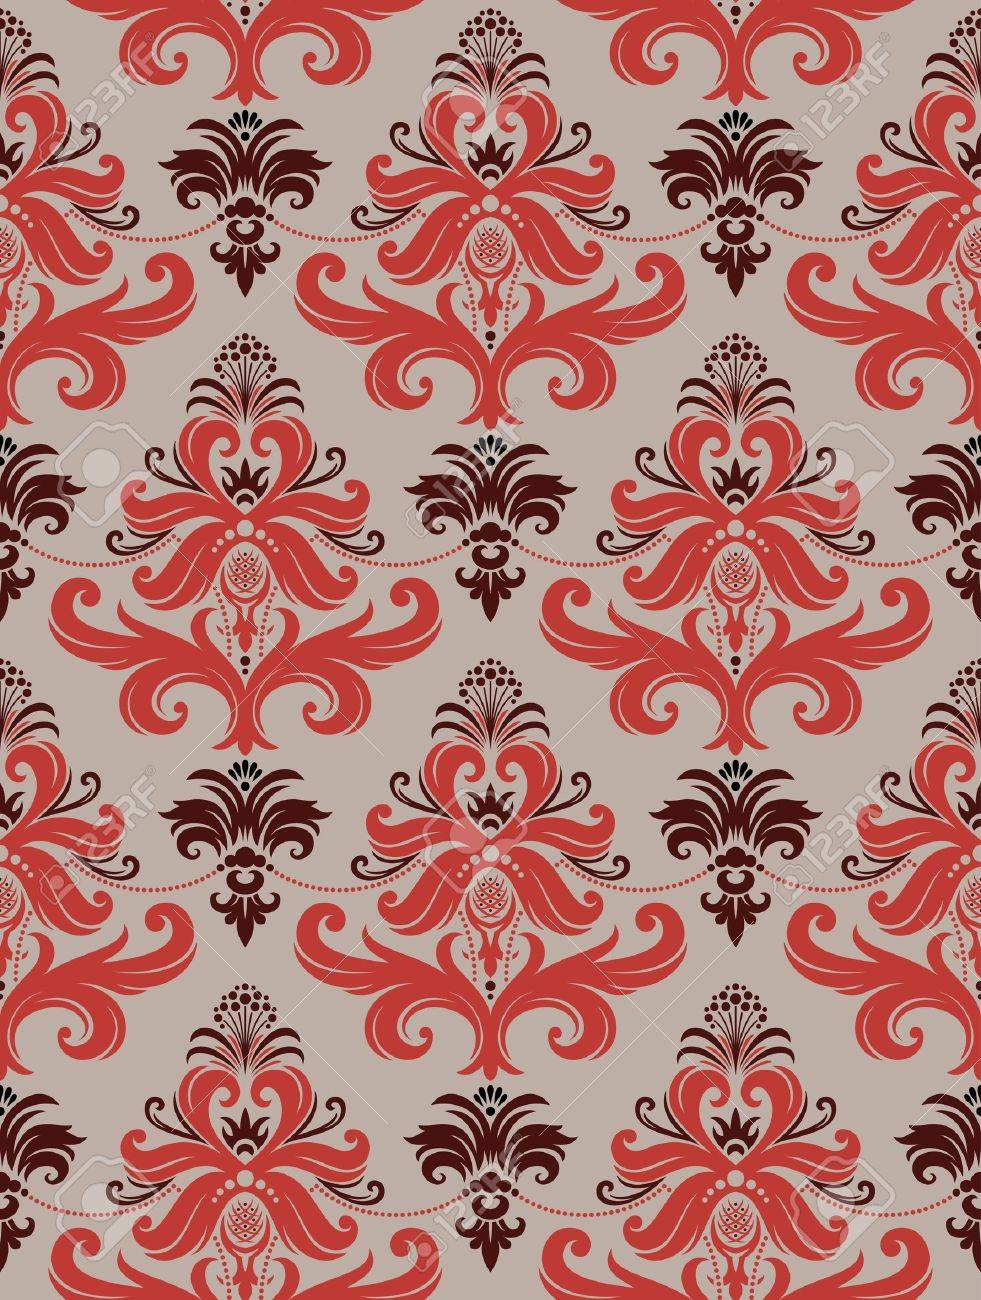 Seamless background from a floral ornament, Fashionable modern wallpaper or textile - 7087817